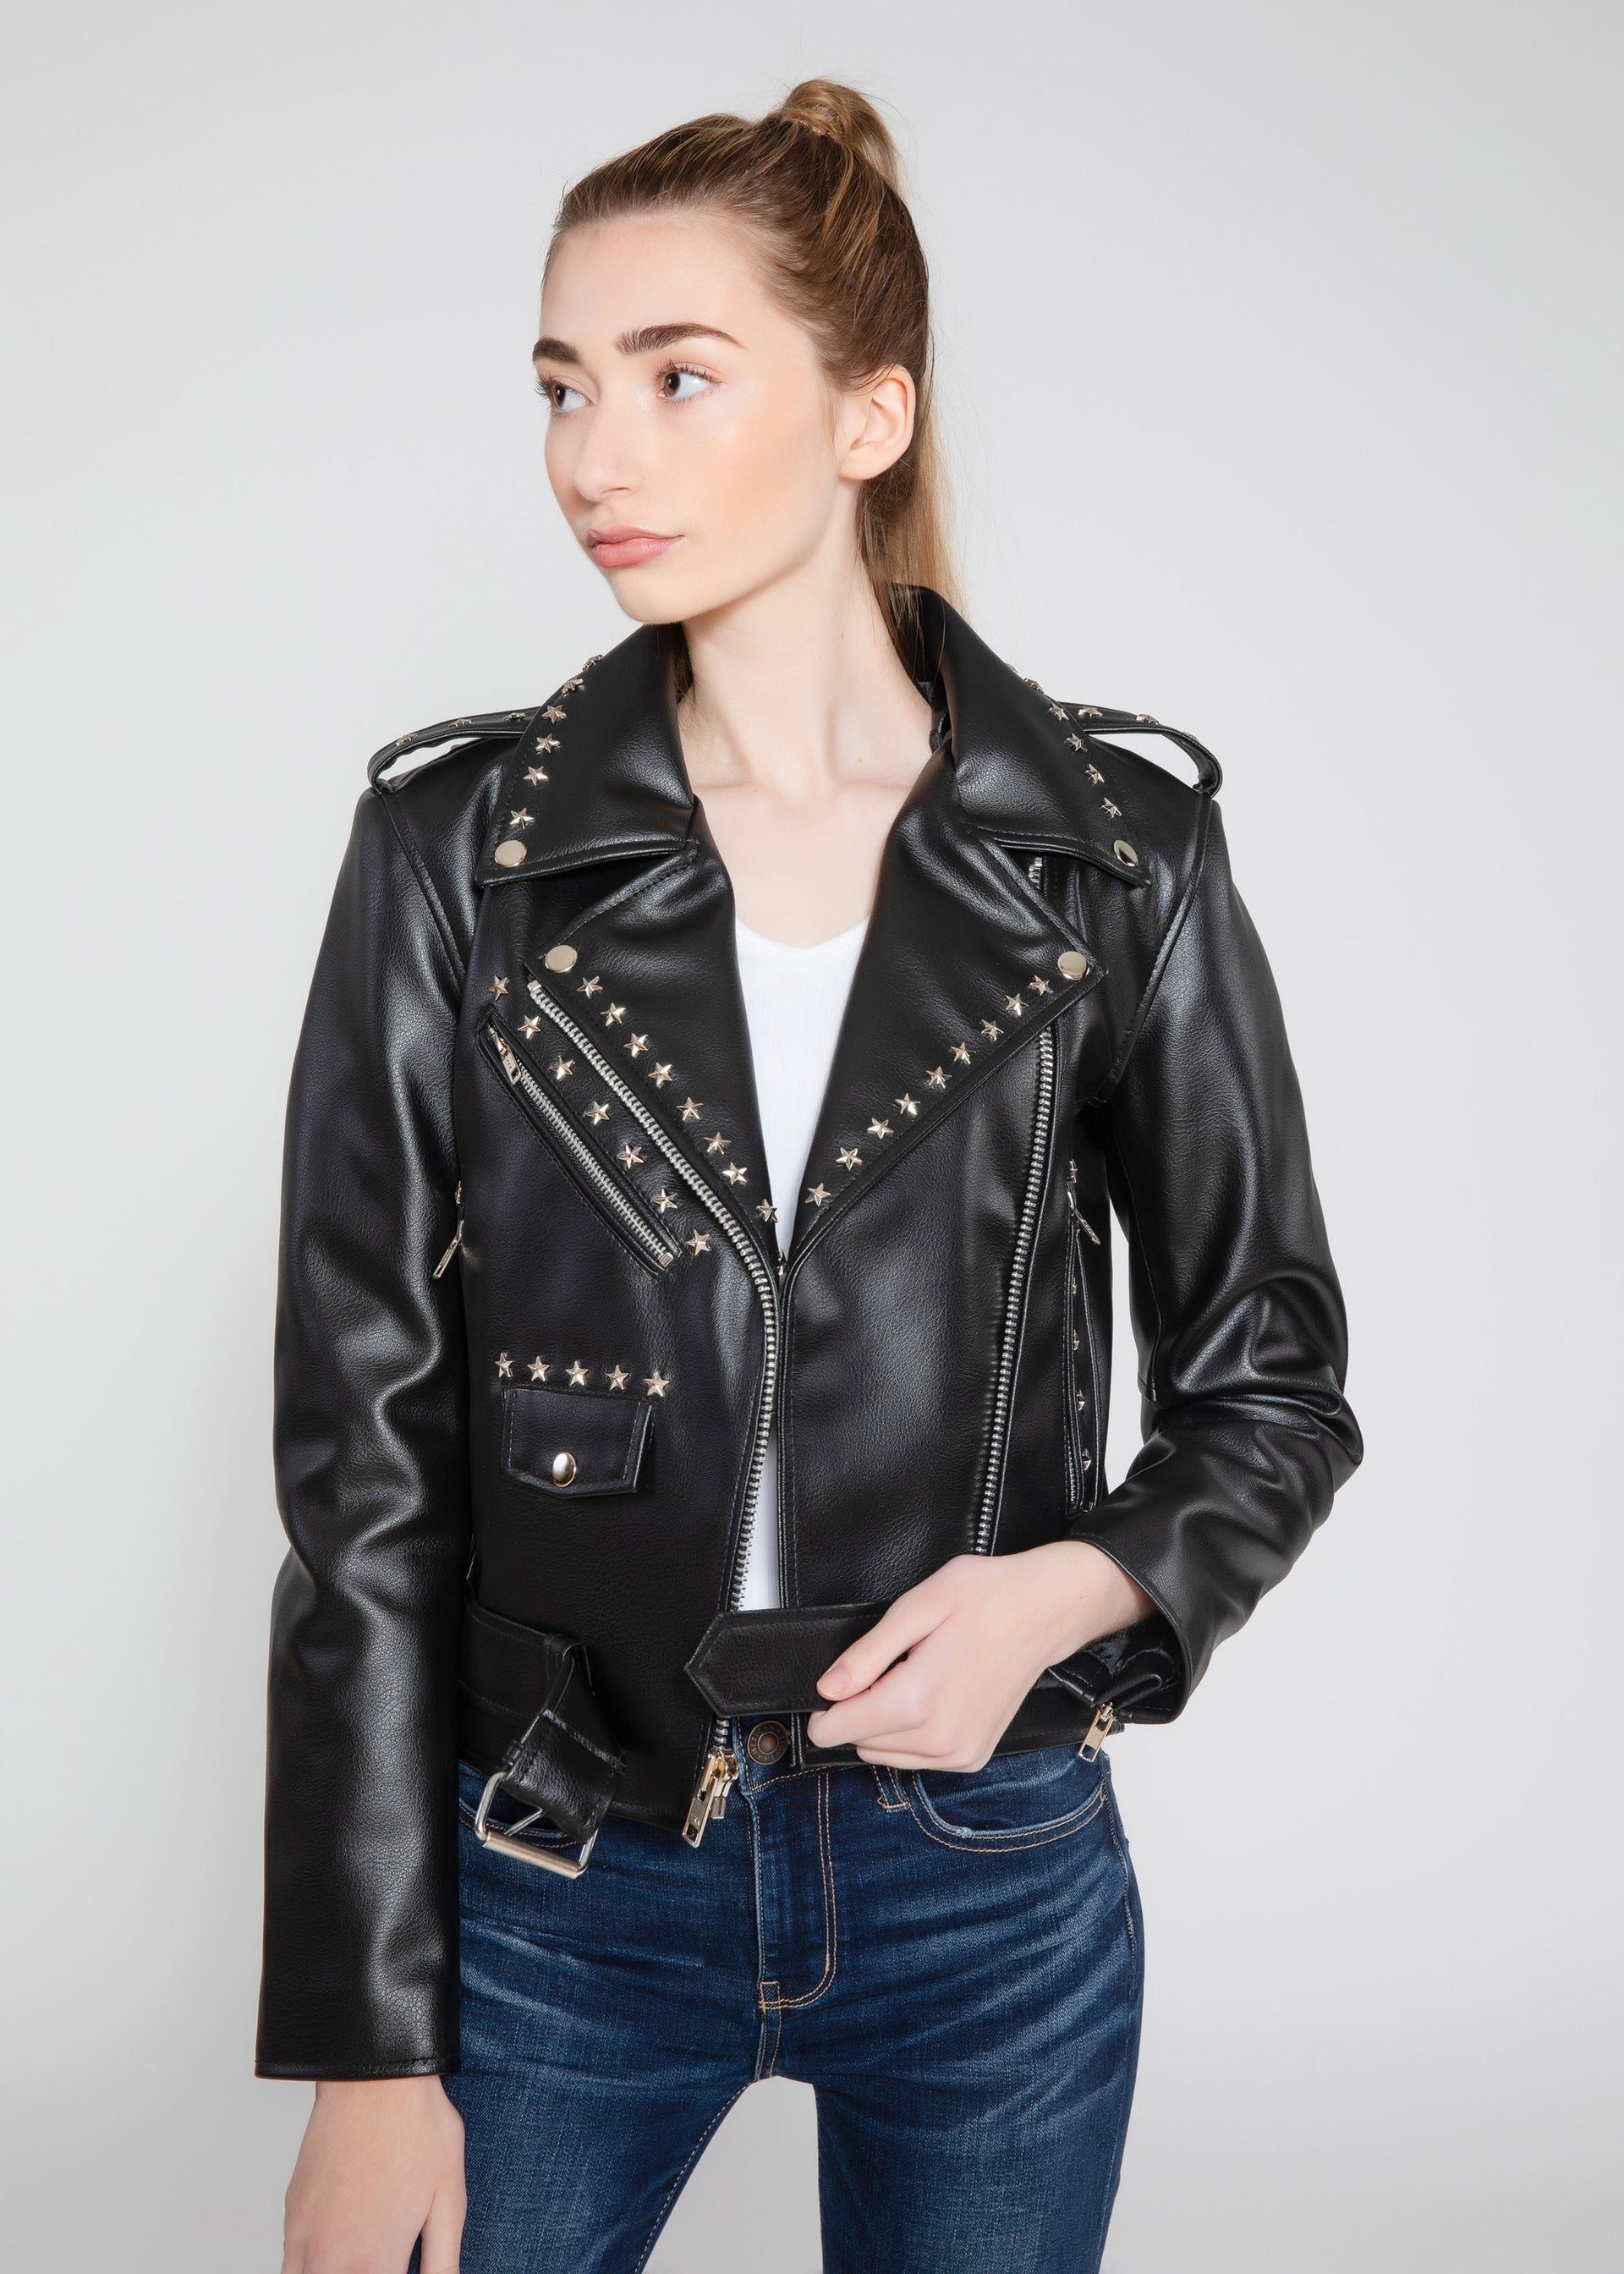 Star Studded Black Leather Jacket